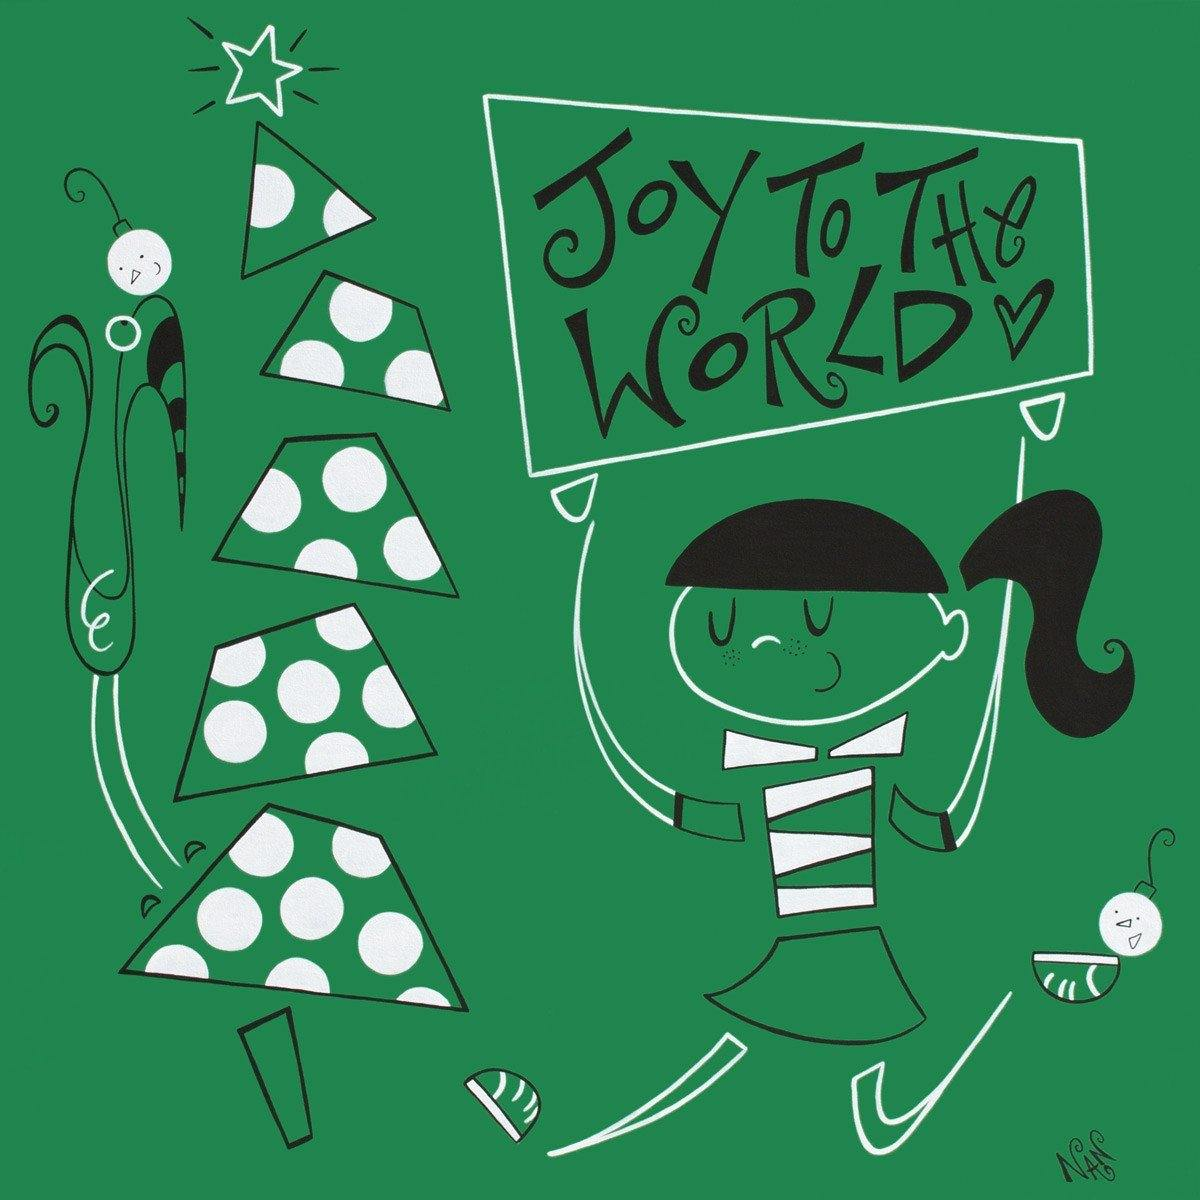 Joy To The World - Prints | Fine Art and Limited Edition Prints | The Art Of Nan Coffey